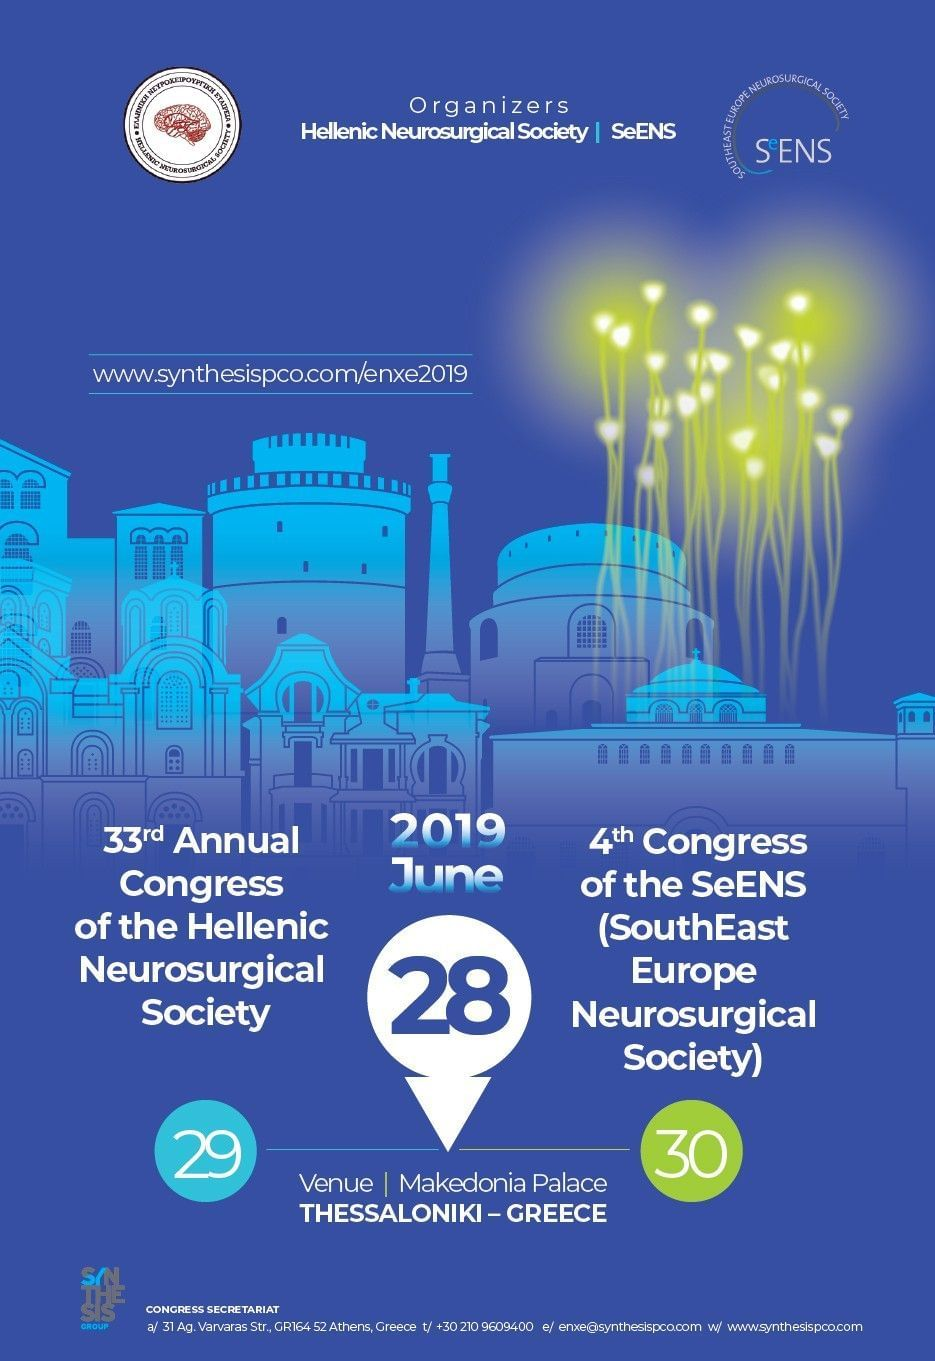 33rd ANNUAL CONGRESS OF THE HELLENIC NEUROSURGICAL SOCIETY & 4TH CONGRESS OF THE SΕENS (SOUTHEAST EUROPE NEUROSURGICAL SOCIETY